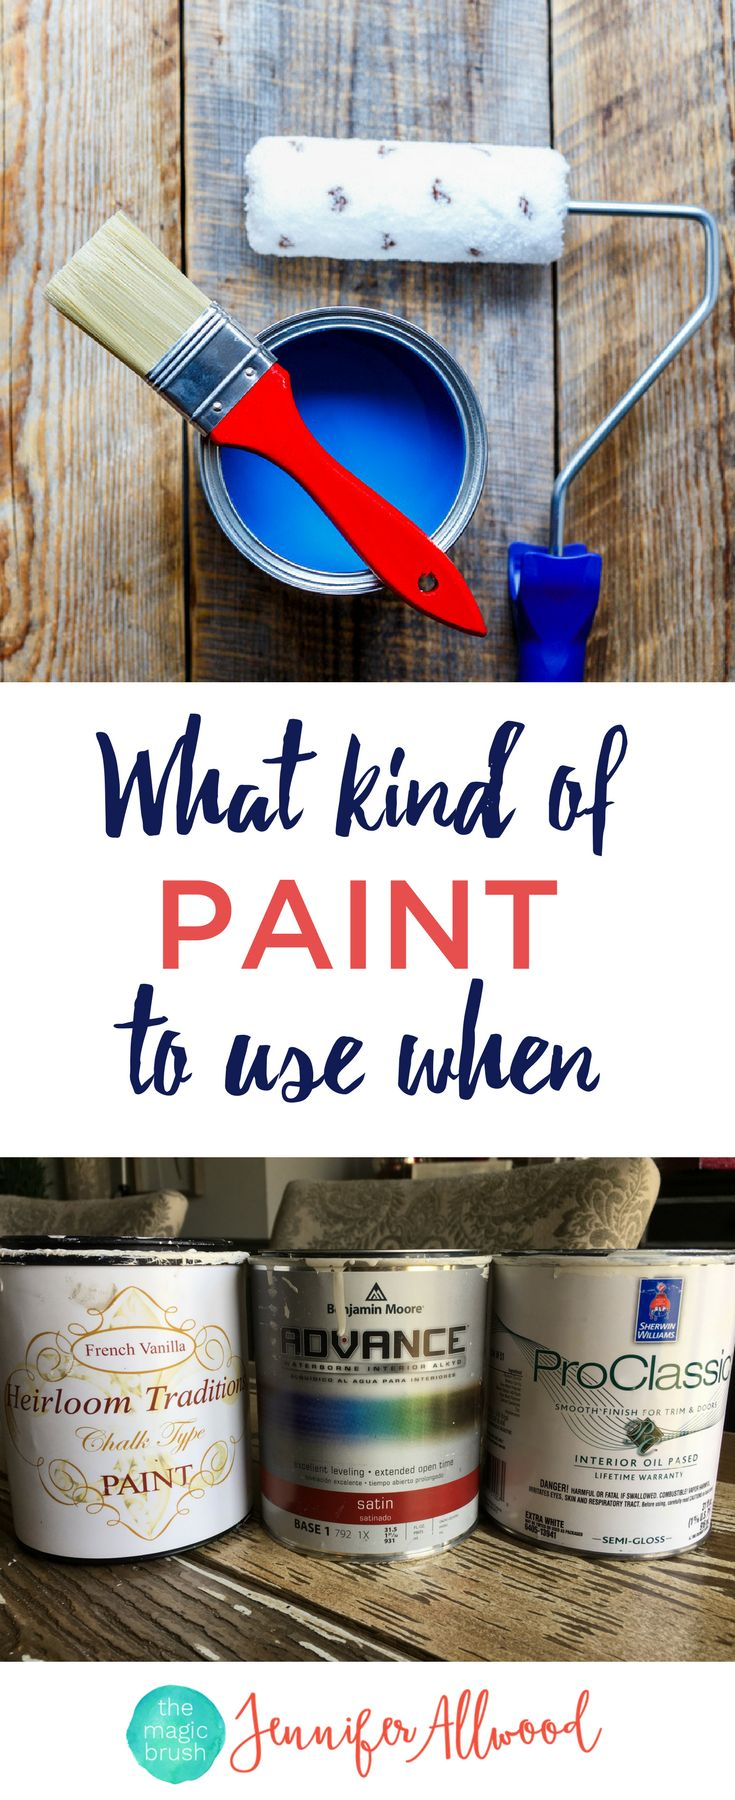 590 best the magic brush painting projects images on pinterest for Best paint for kitchen cabinets oil or latex